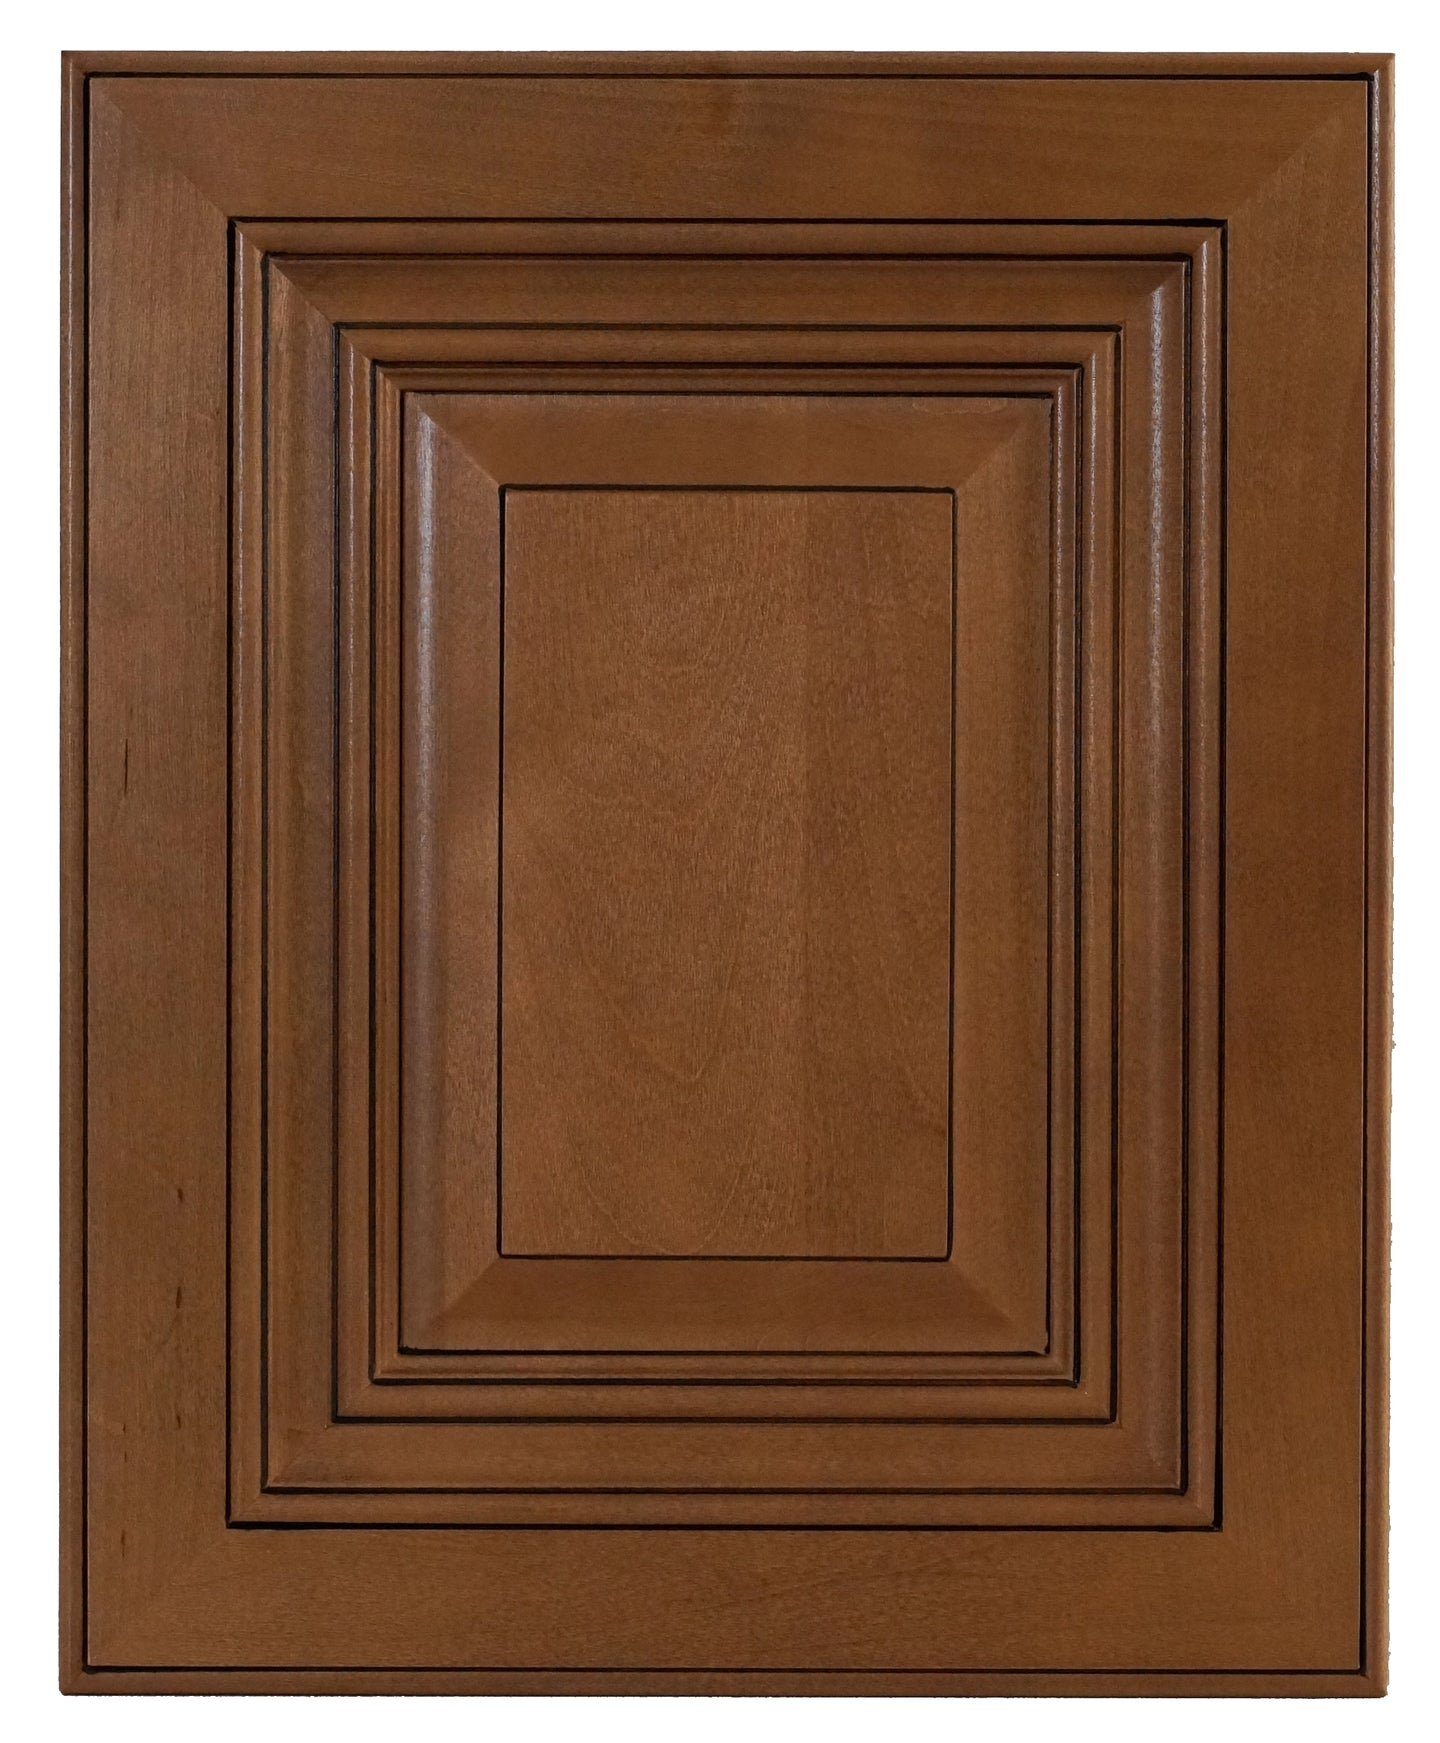 Glazed Cinnamon Maple Door - Quality Kitchens For Less